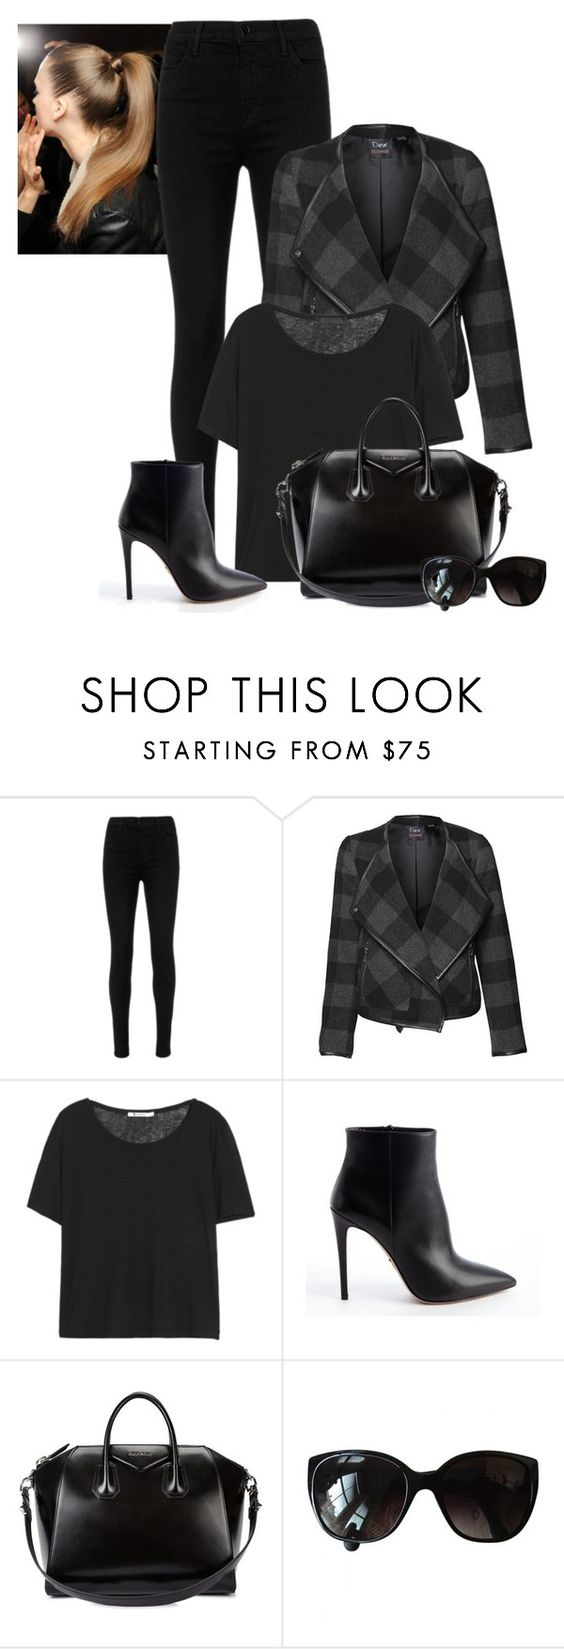 2016/899 by dimceandovski on Polyvore featuring T By Alexander Wang, Dex, J Brand, Prada, Givenchy and Chanel